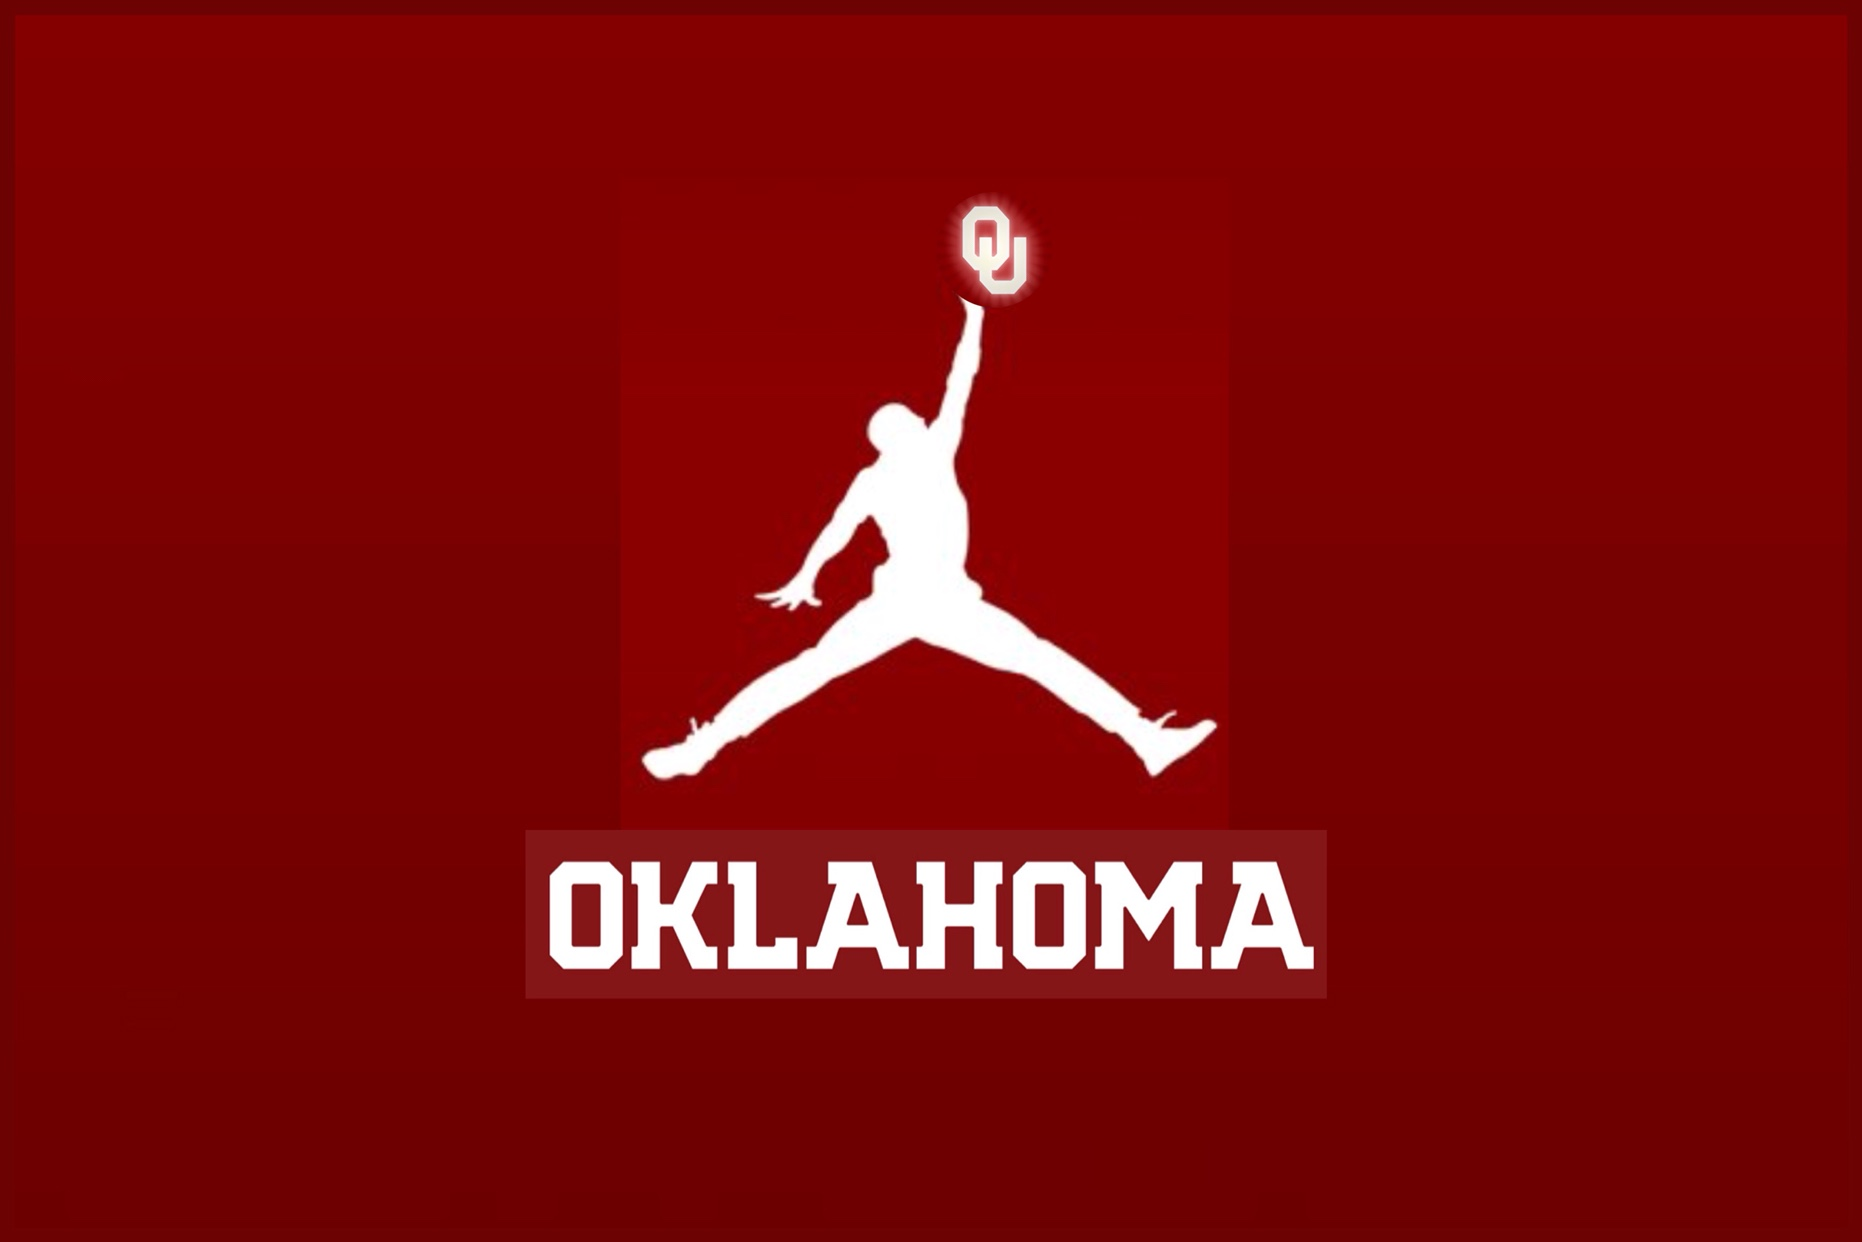 a07538ea8604f3 Oklahoma Sooners Air Jordan IV Shoes by Dank Co 2019 release f6673 3367f ...